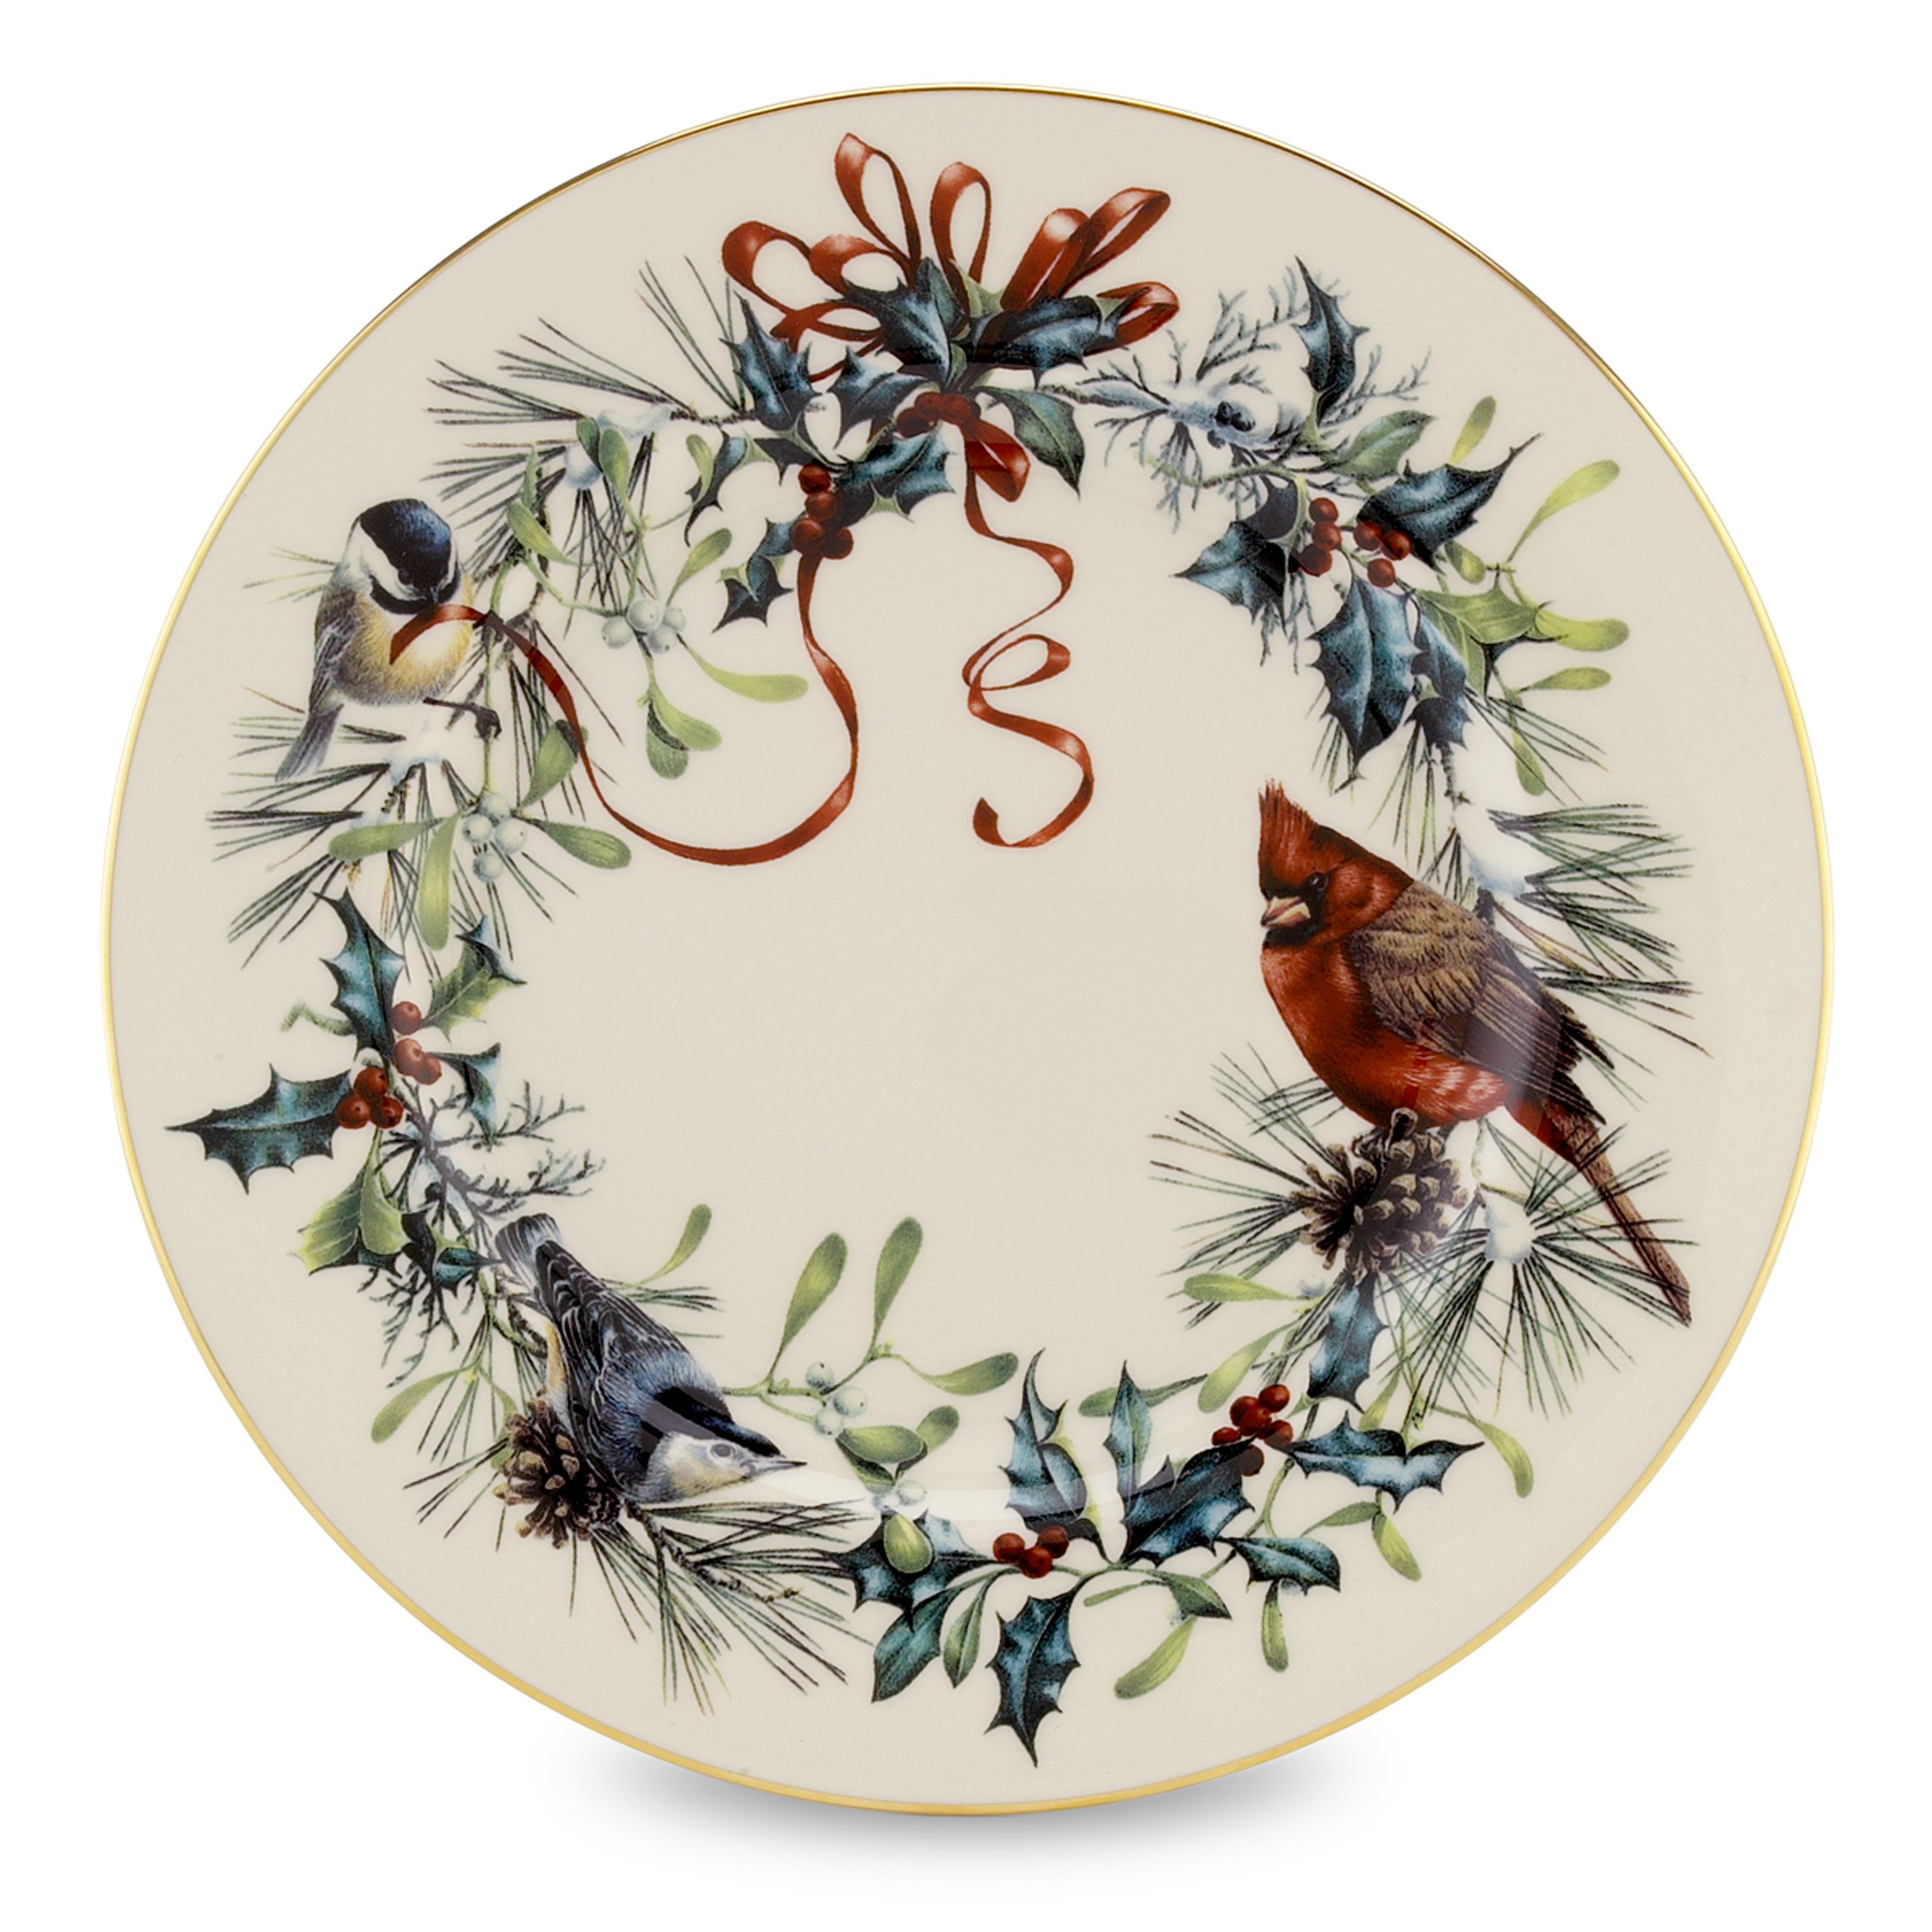 Lenox Winter Greetings Salad Plate,Ivory, Gold